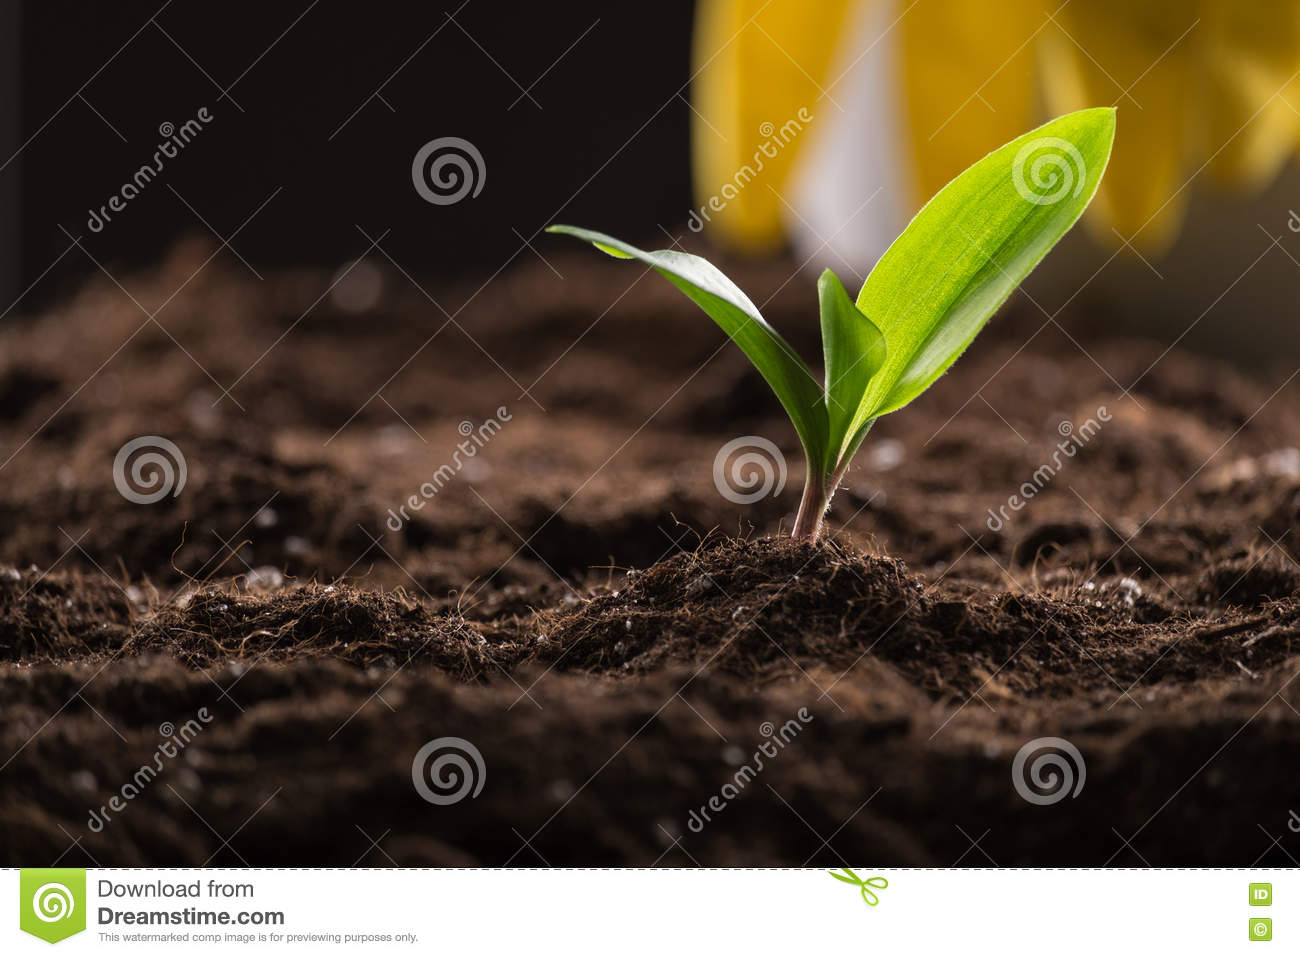 Sprout in ground